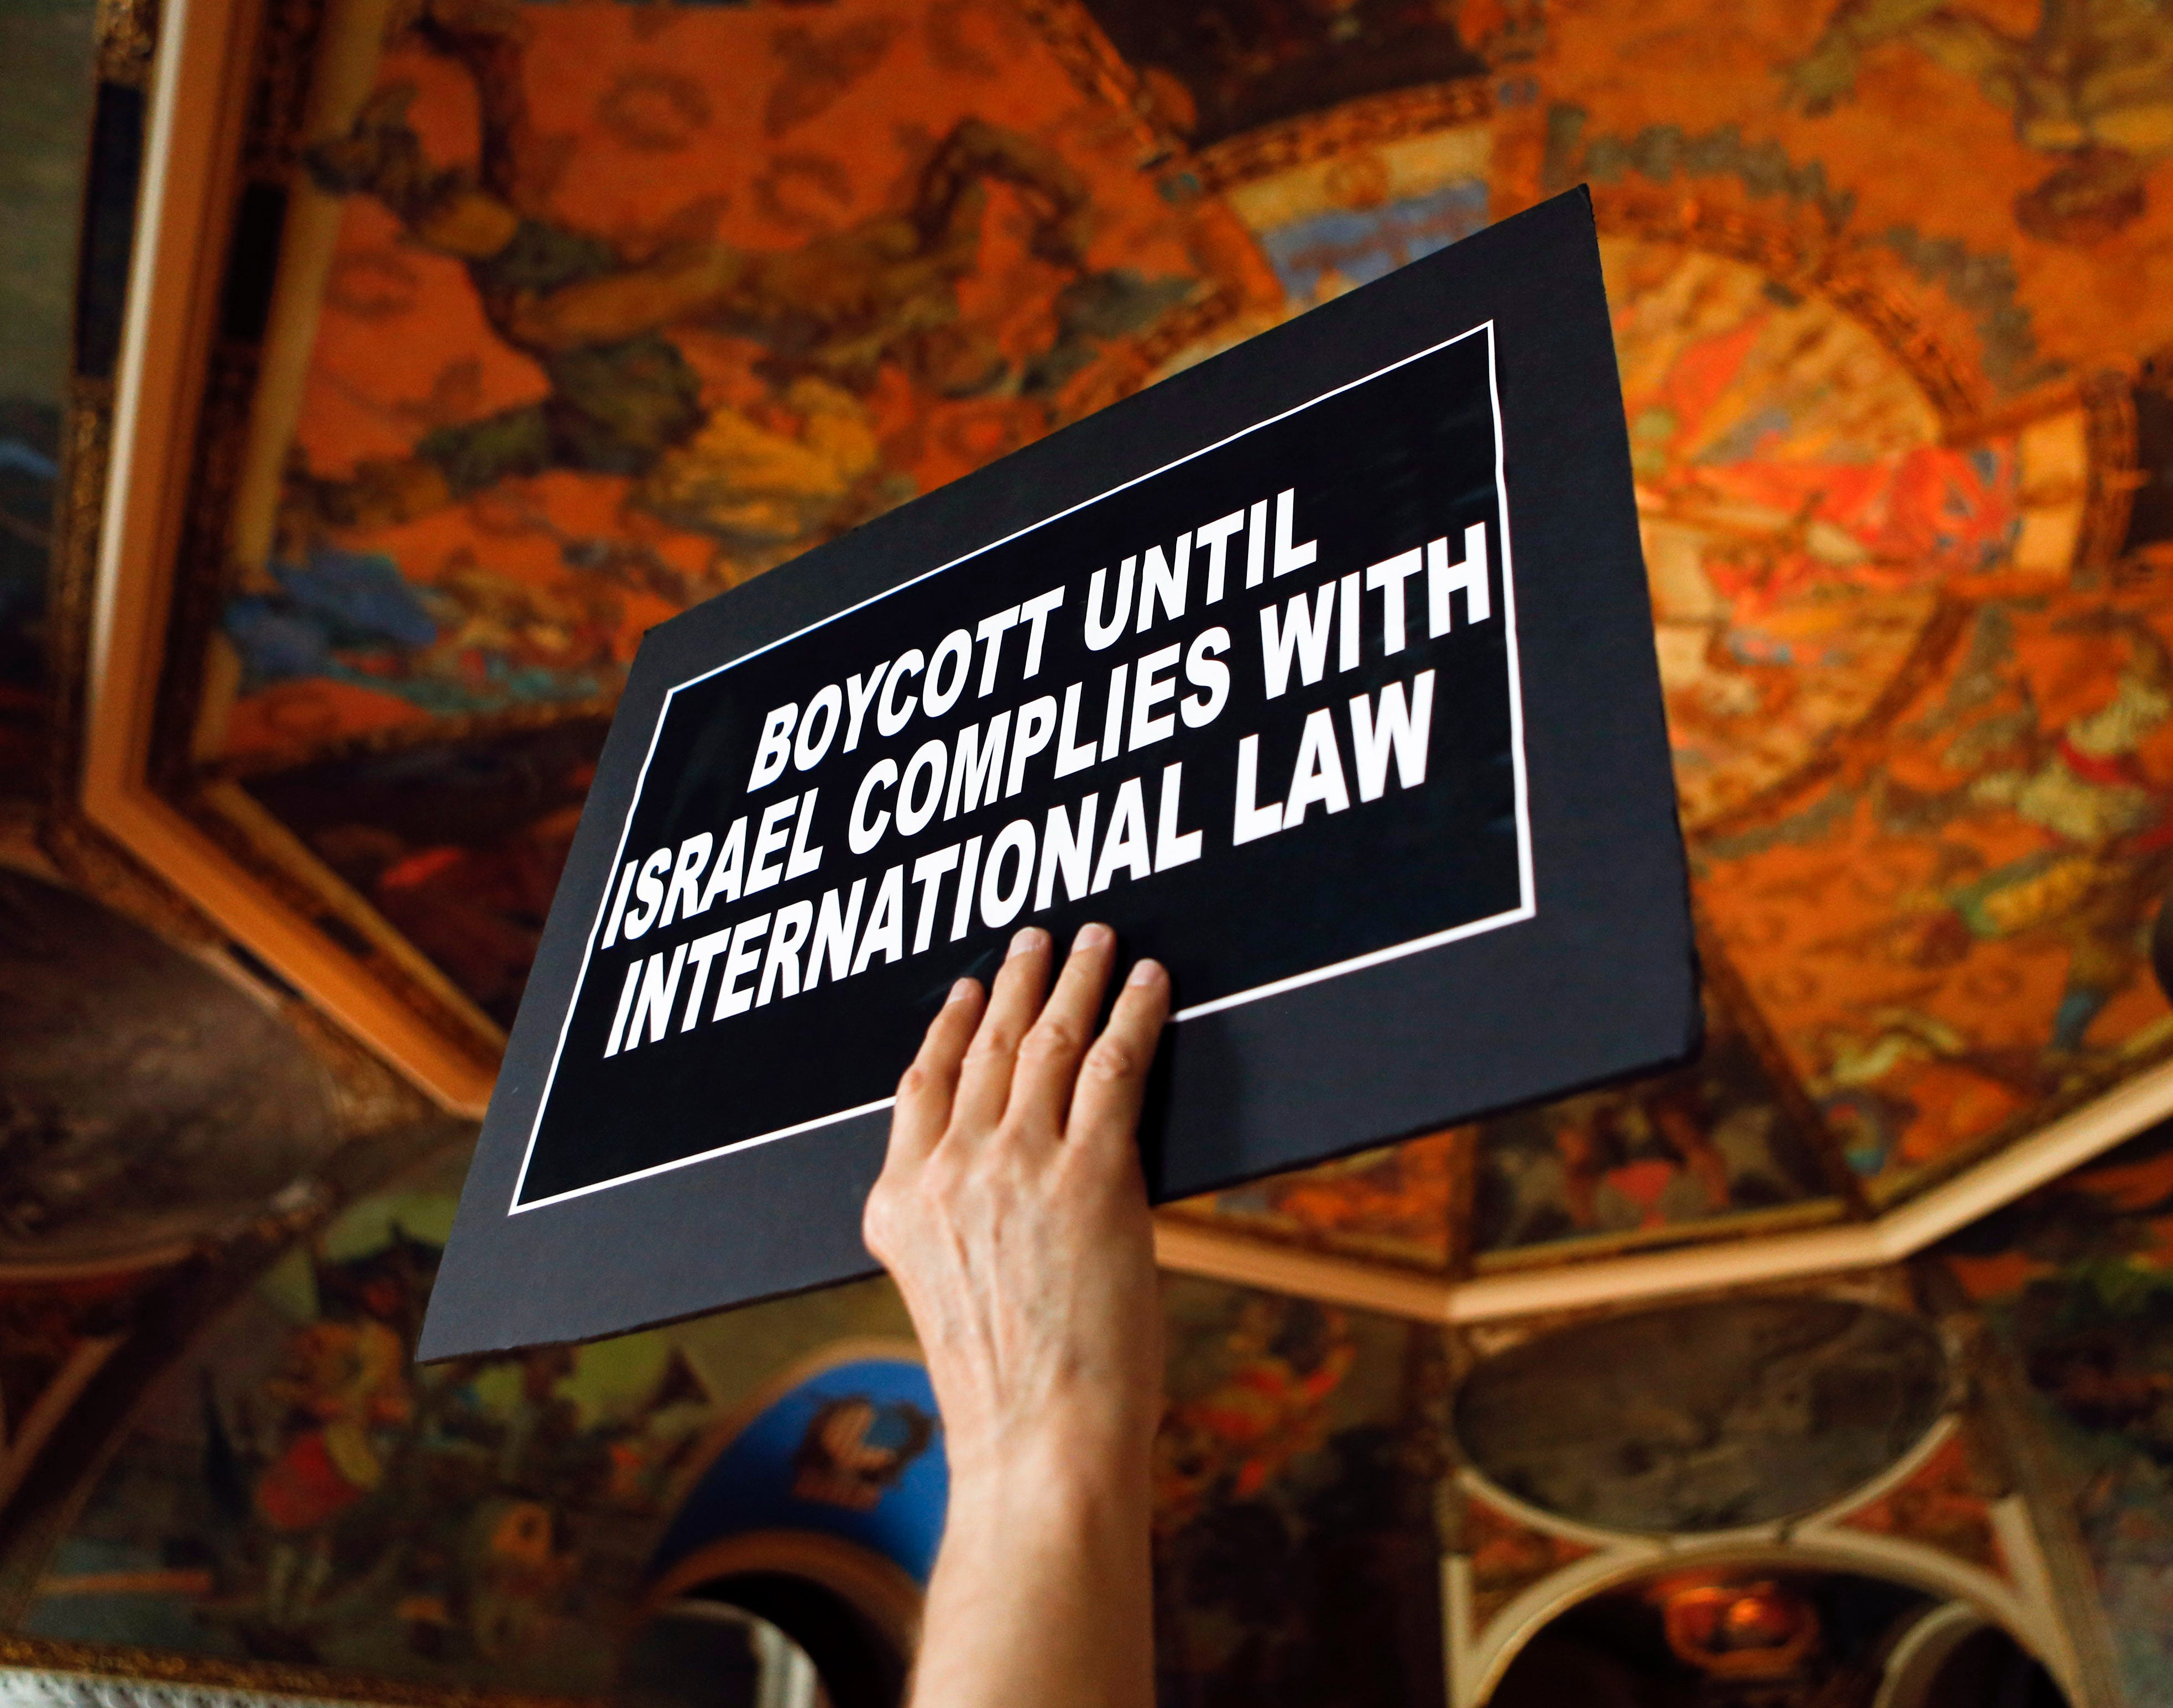 One way to silence Israel boycotts? Get lawmakers to pass anti-BDS bills